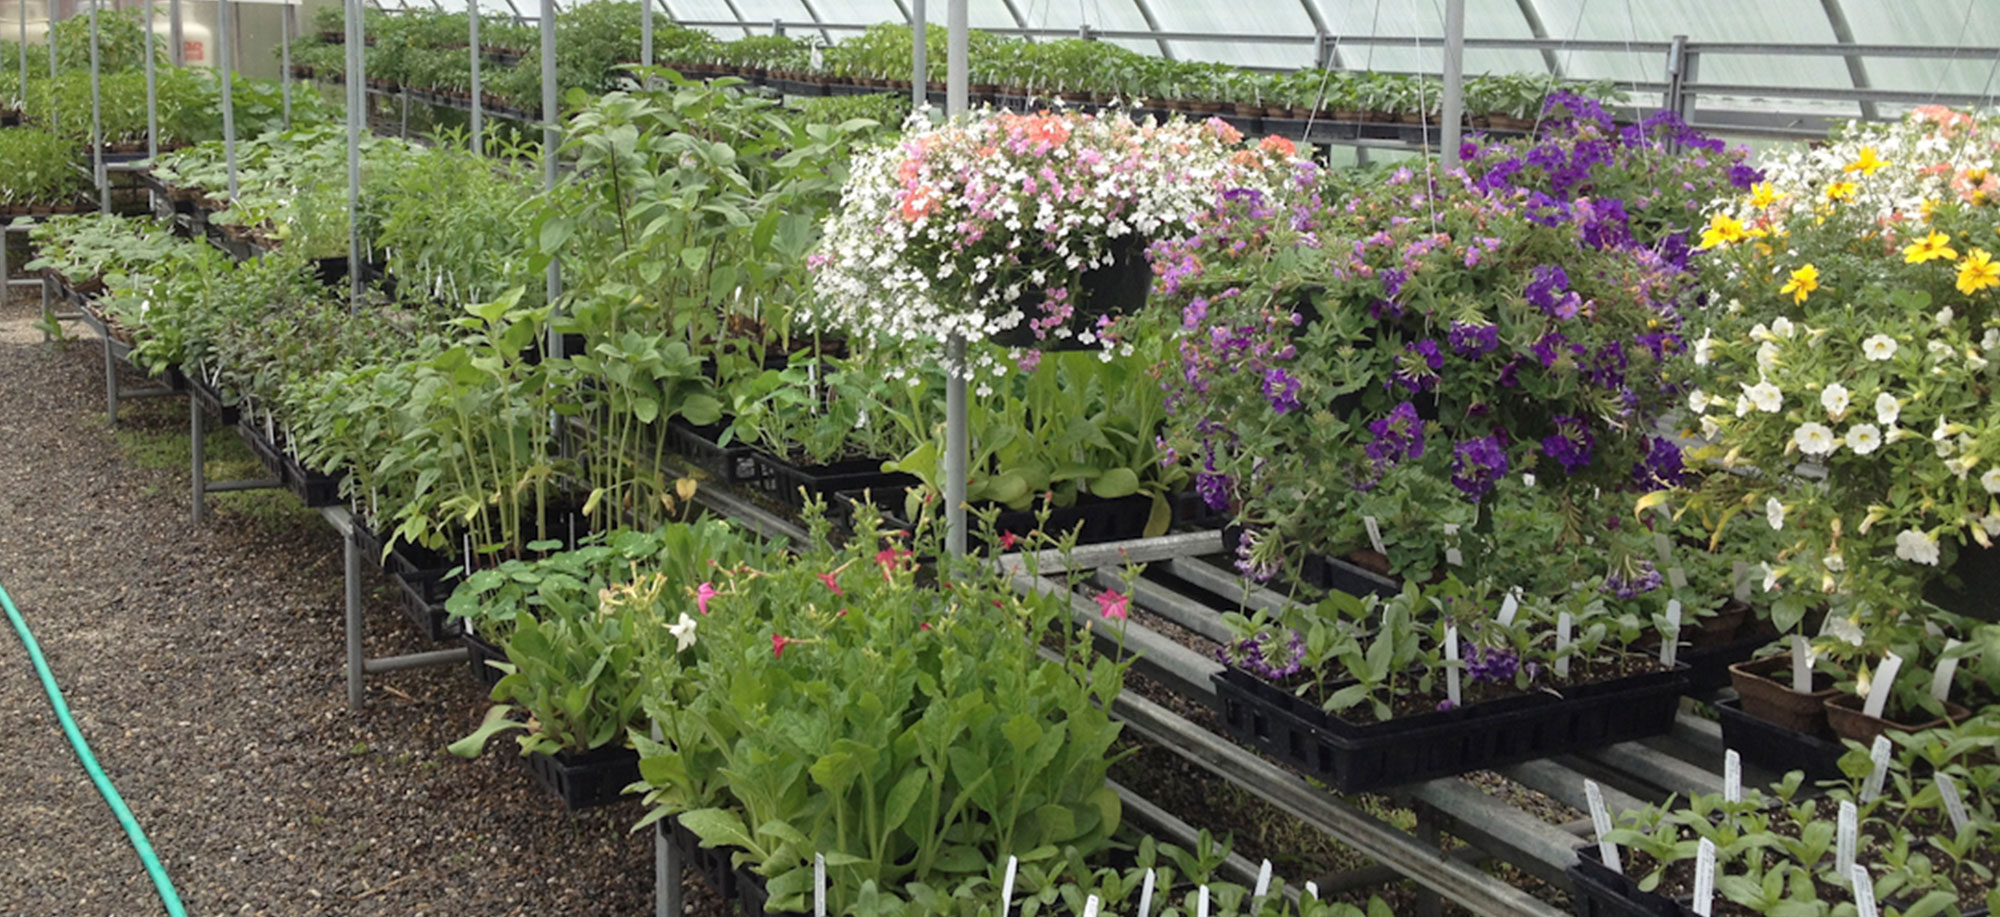 A Variety of Fresh Herb Starts are Available in the Nursery